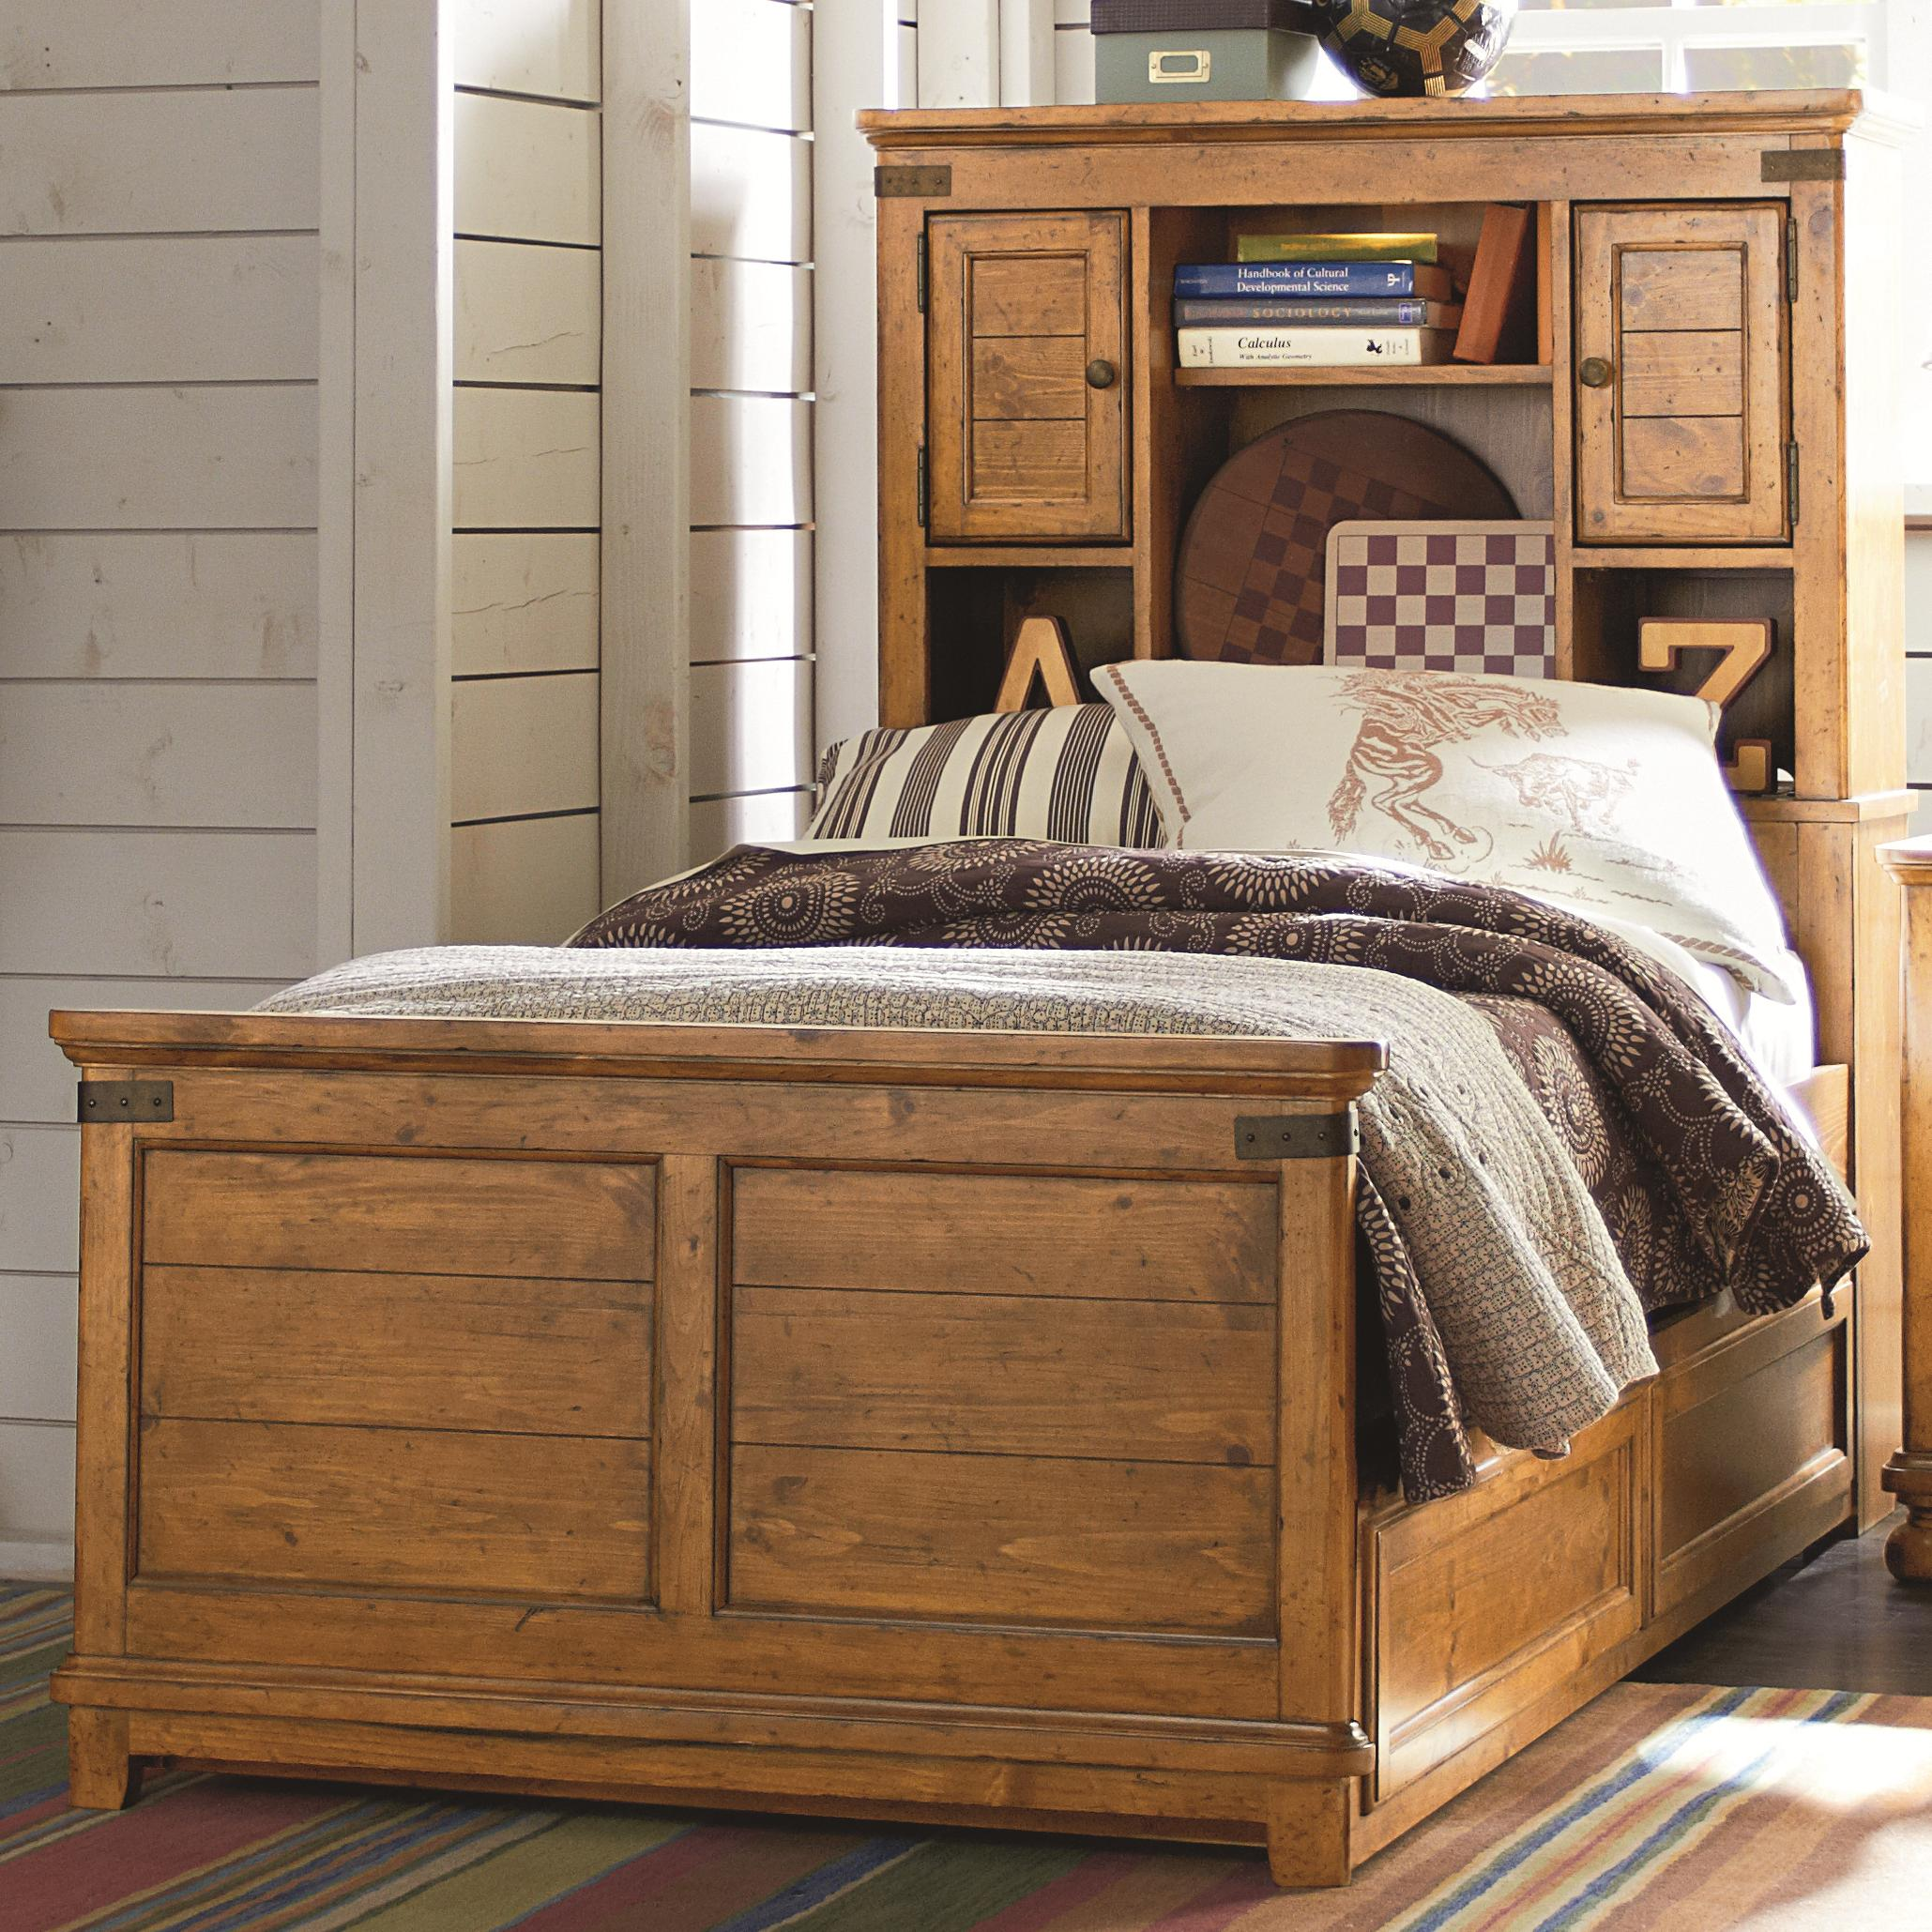 Twin Bed With Under Bed Part - 19: Twin Bookcase Bed With Underbed Trundle Or Storage Drawer Unit